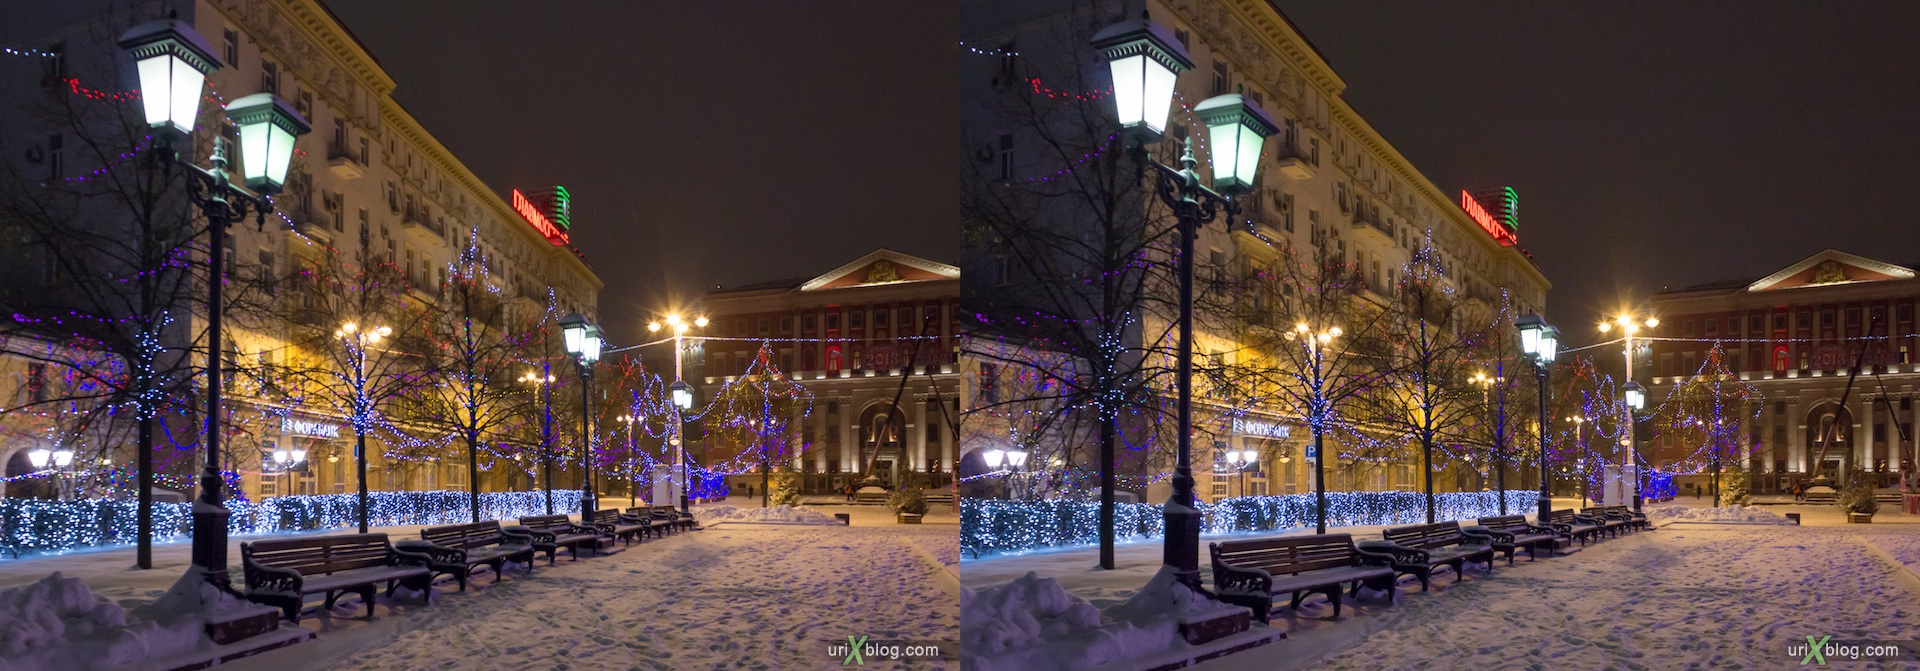 2013, Moscow, Tverskaja square, night, fountain, snow, winter, new year, christmass tree, city, Russia, 3D, stereo pair, cross-eyed, crossview, cross view stereo pair